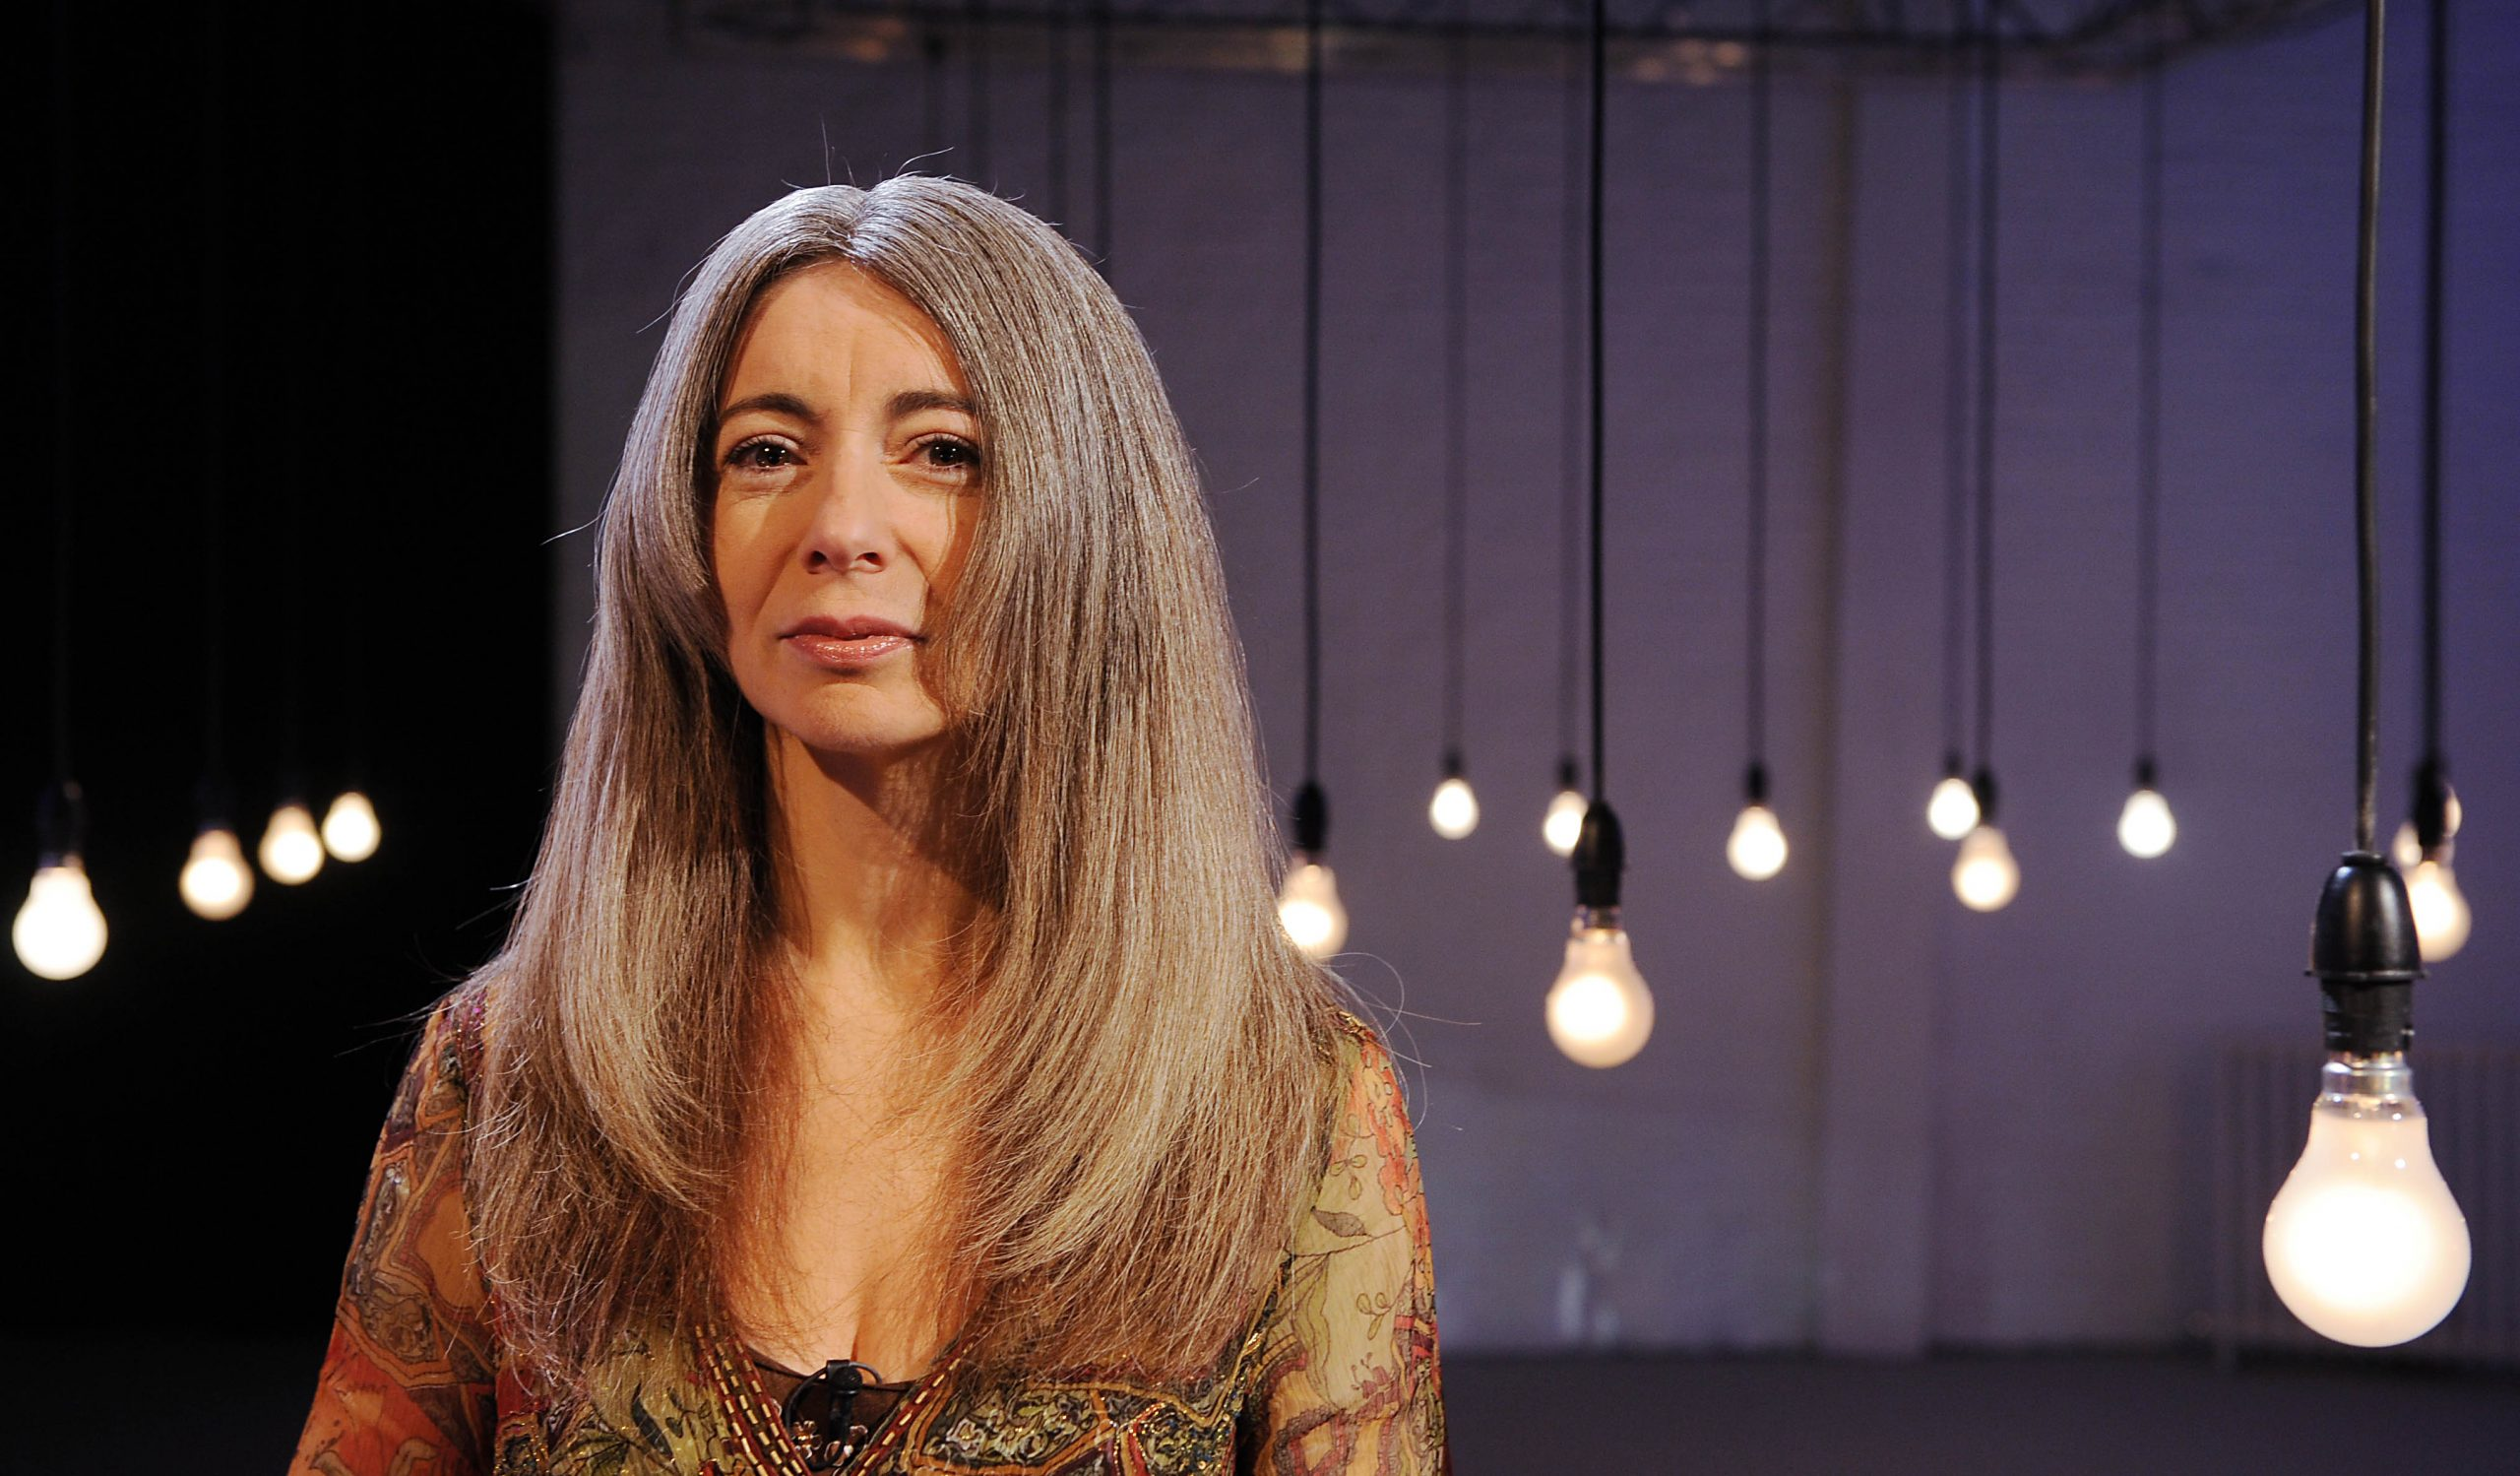 A photograph of Evelyn Glennie